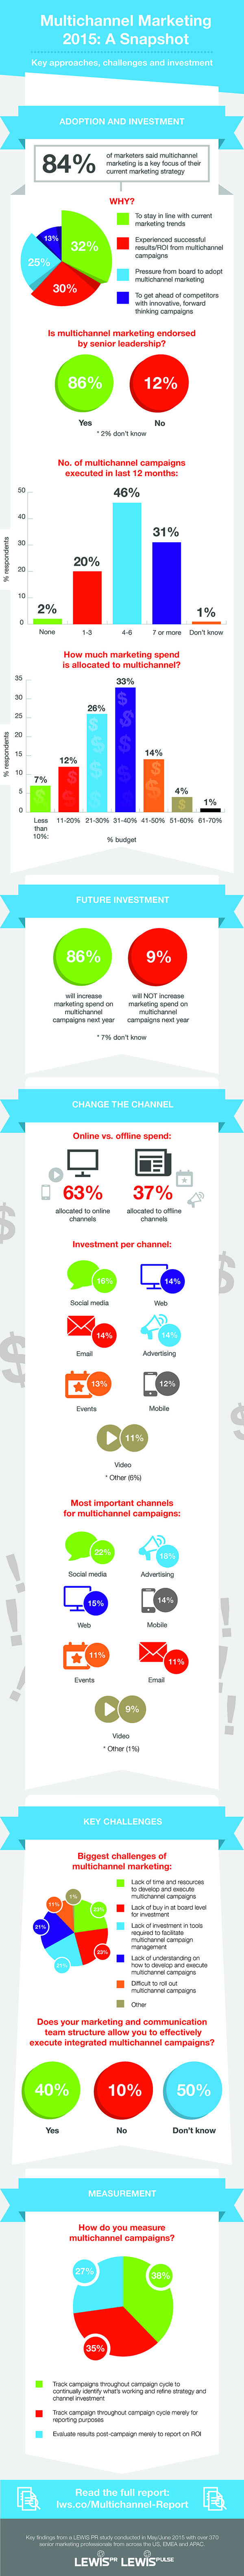 Infografik: Multichannel-Marketing 2015, Quelle: lewispr